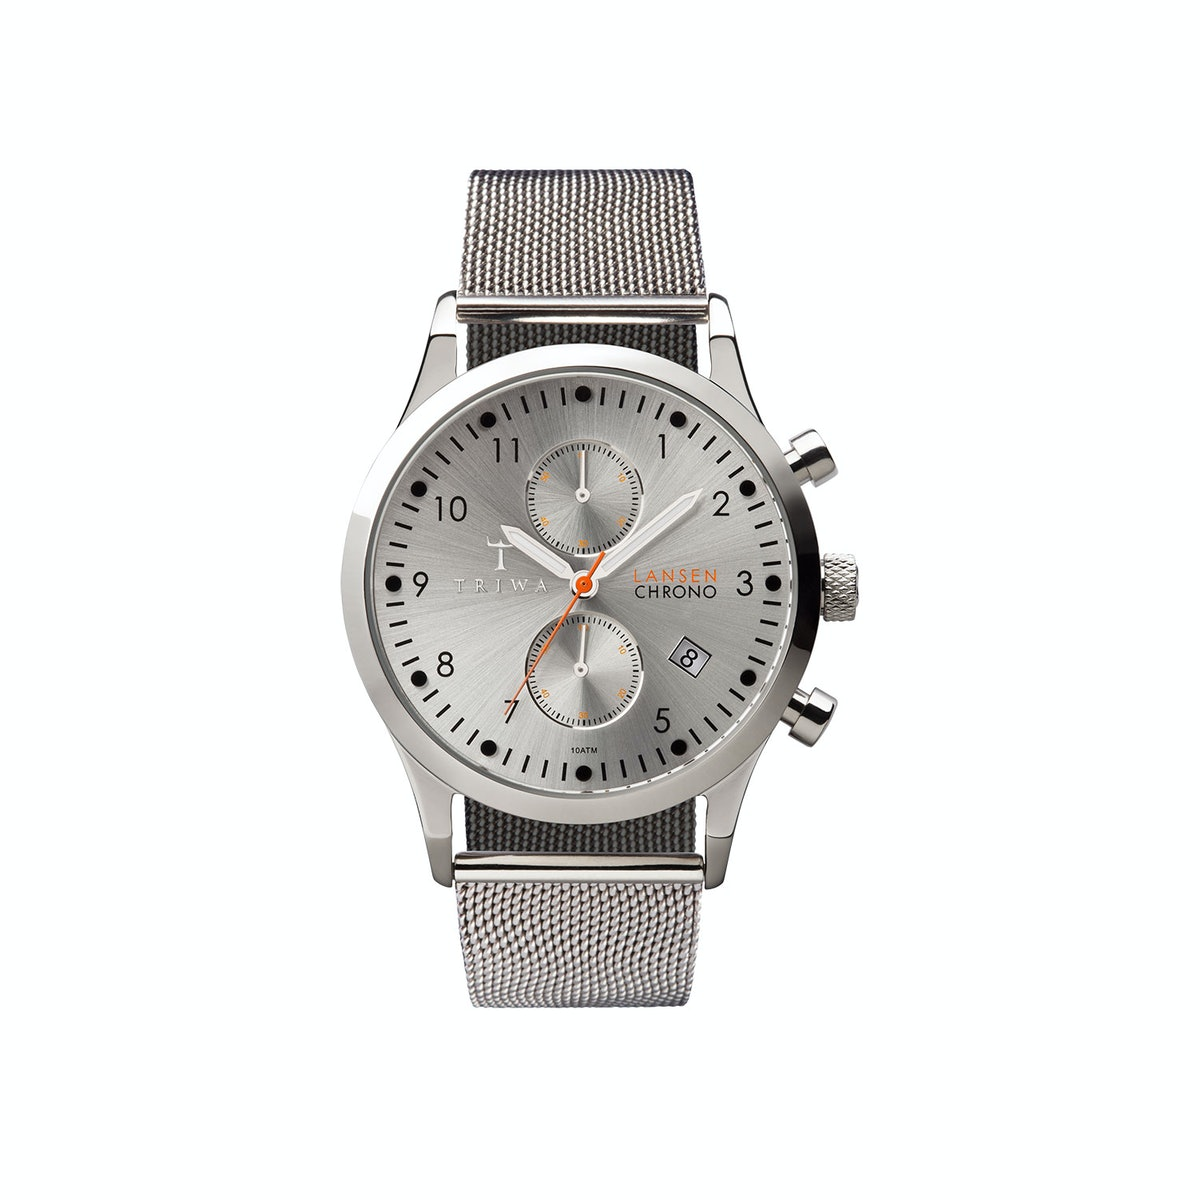 Triwa stainless steel watch